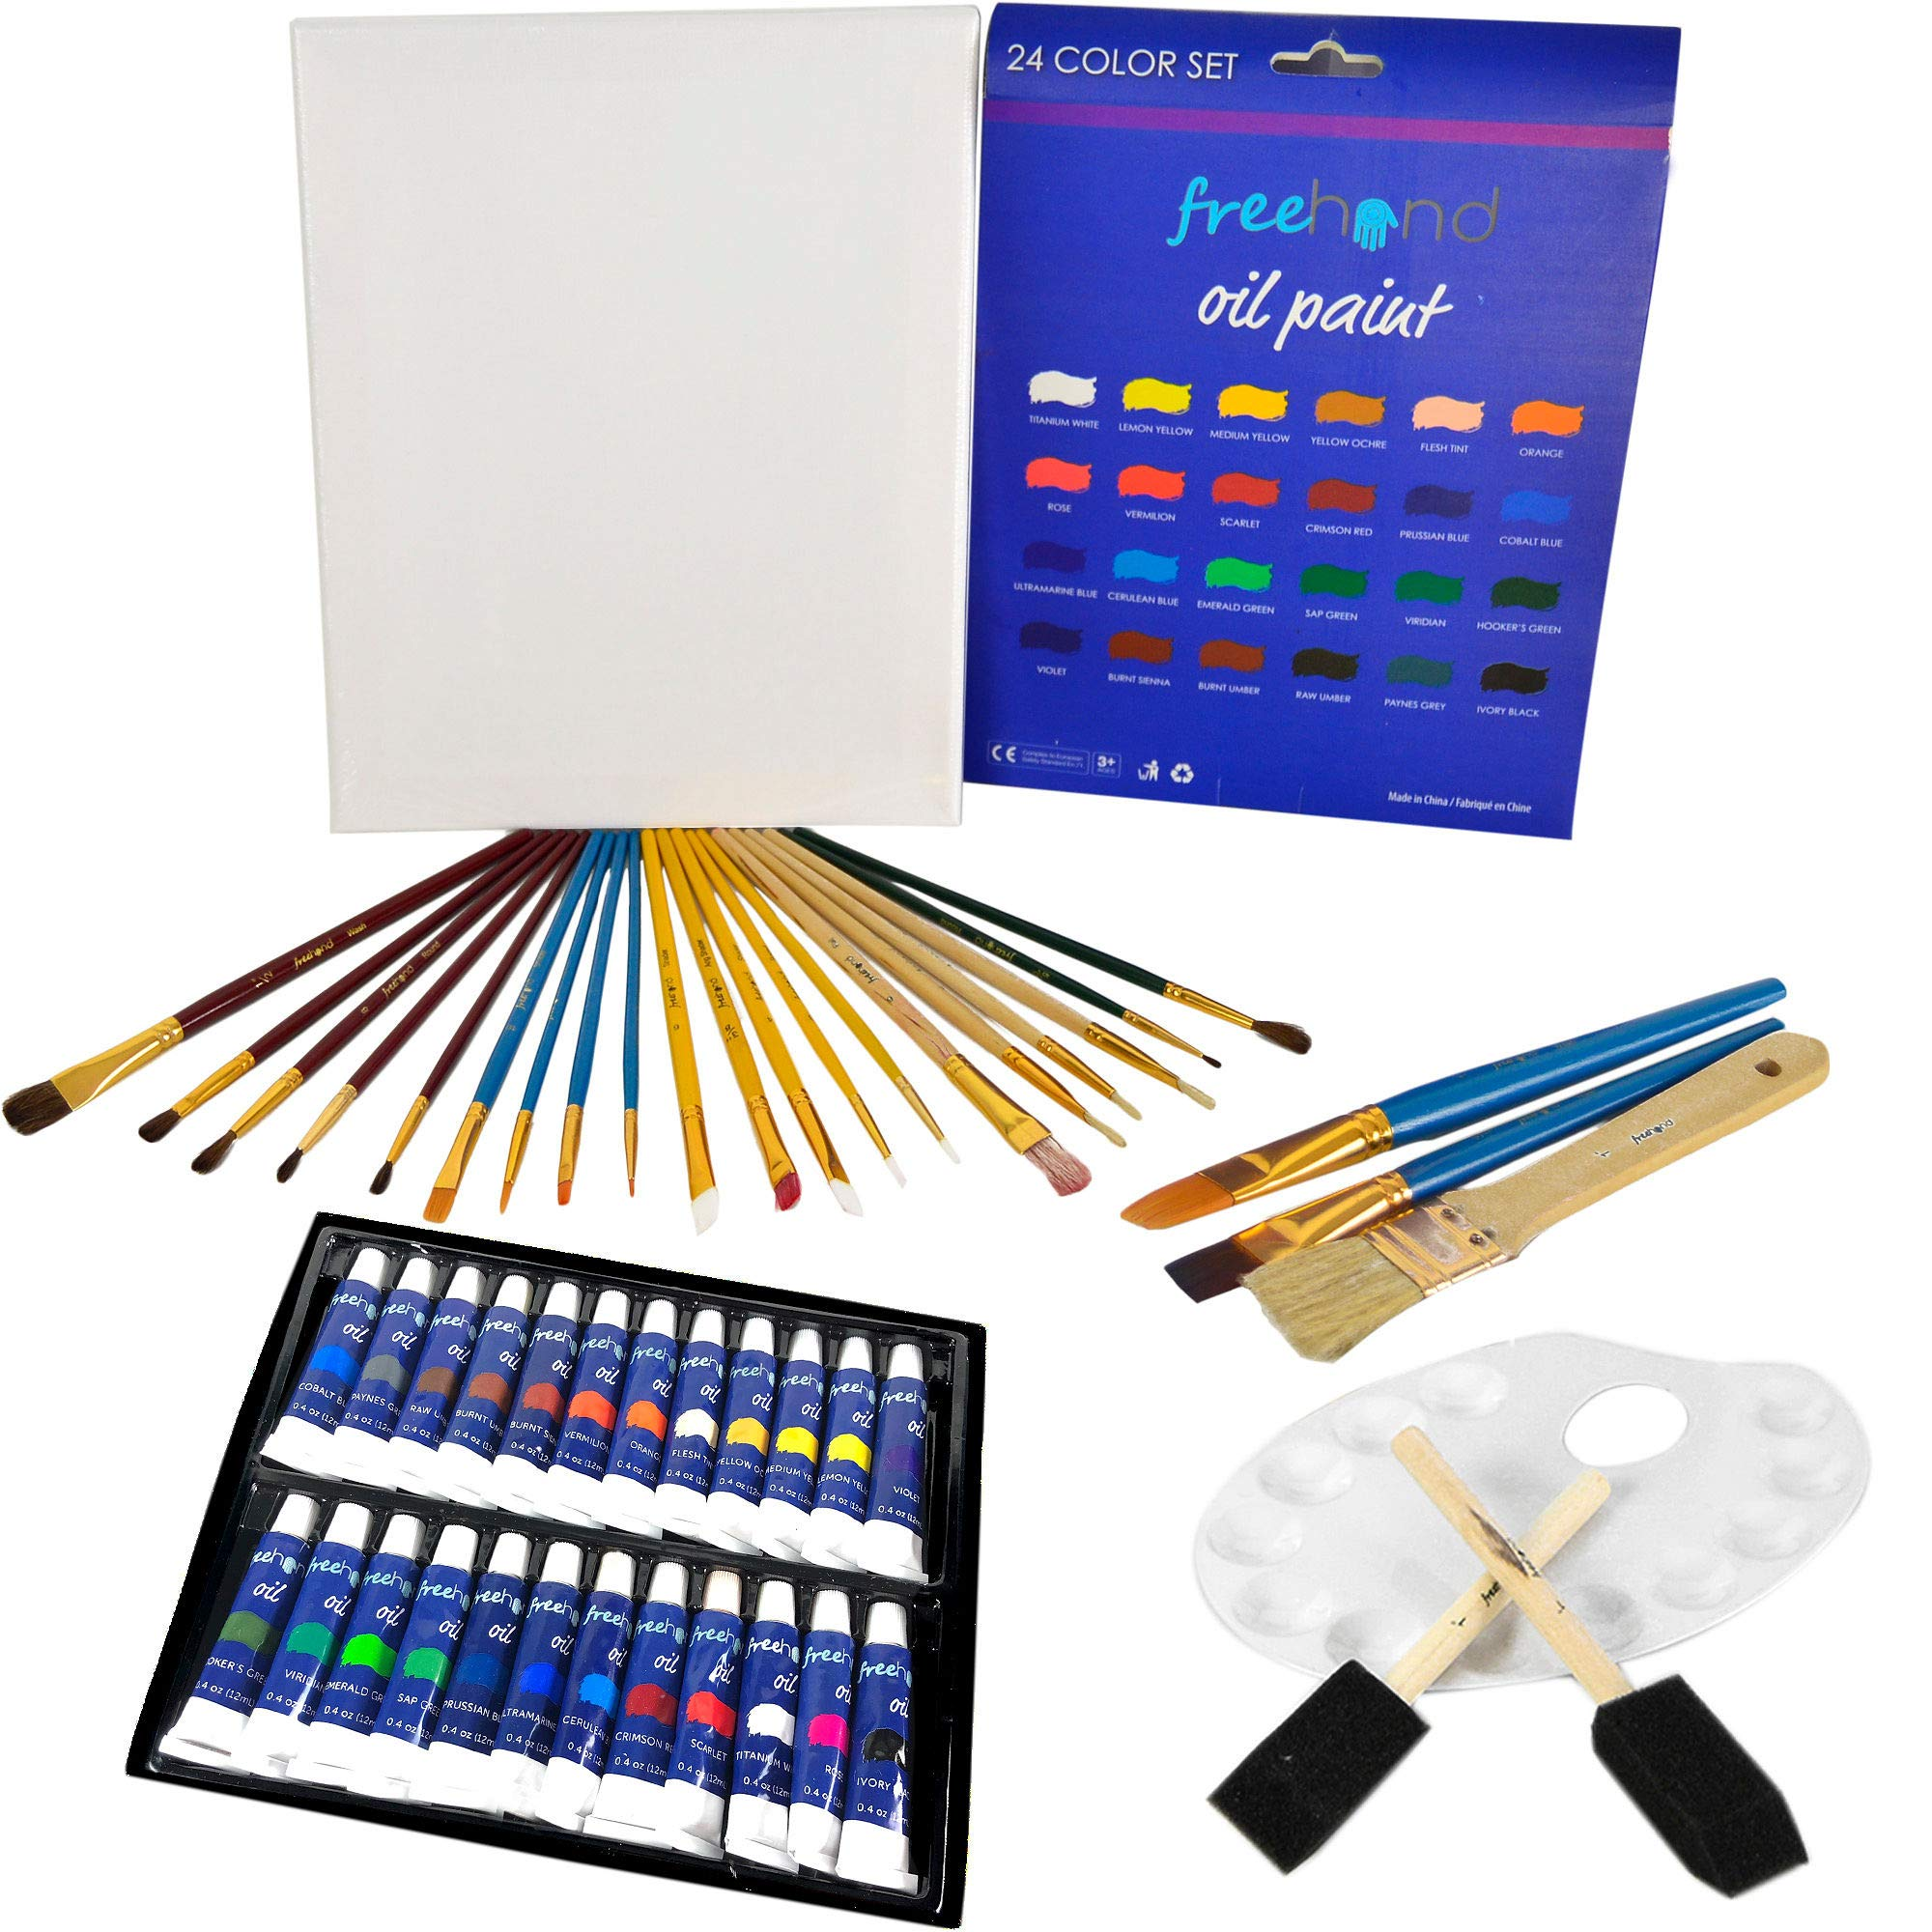 Ultimate Oil Painting Set - 24 Oil Paints - Painting Canvas - Paint Brushes Set - Art Supplies for Teens, Adults & Kids - Deluxe Art Set